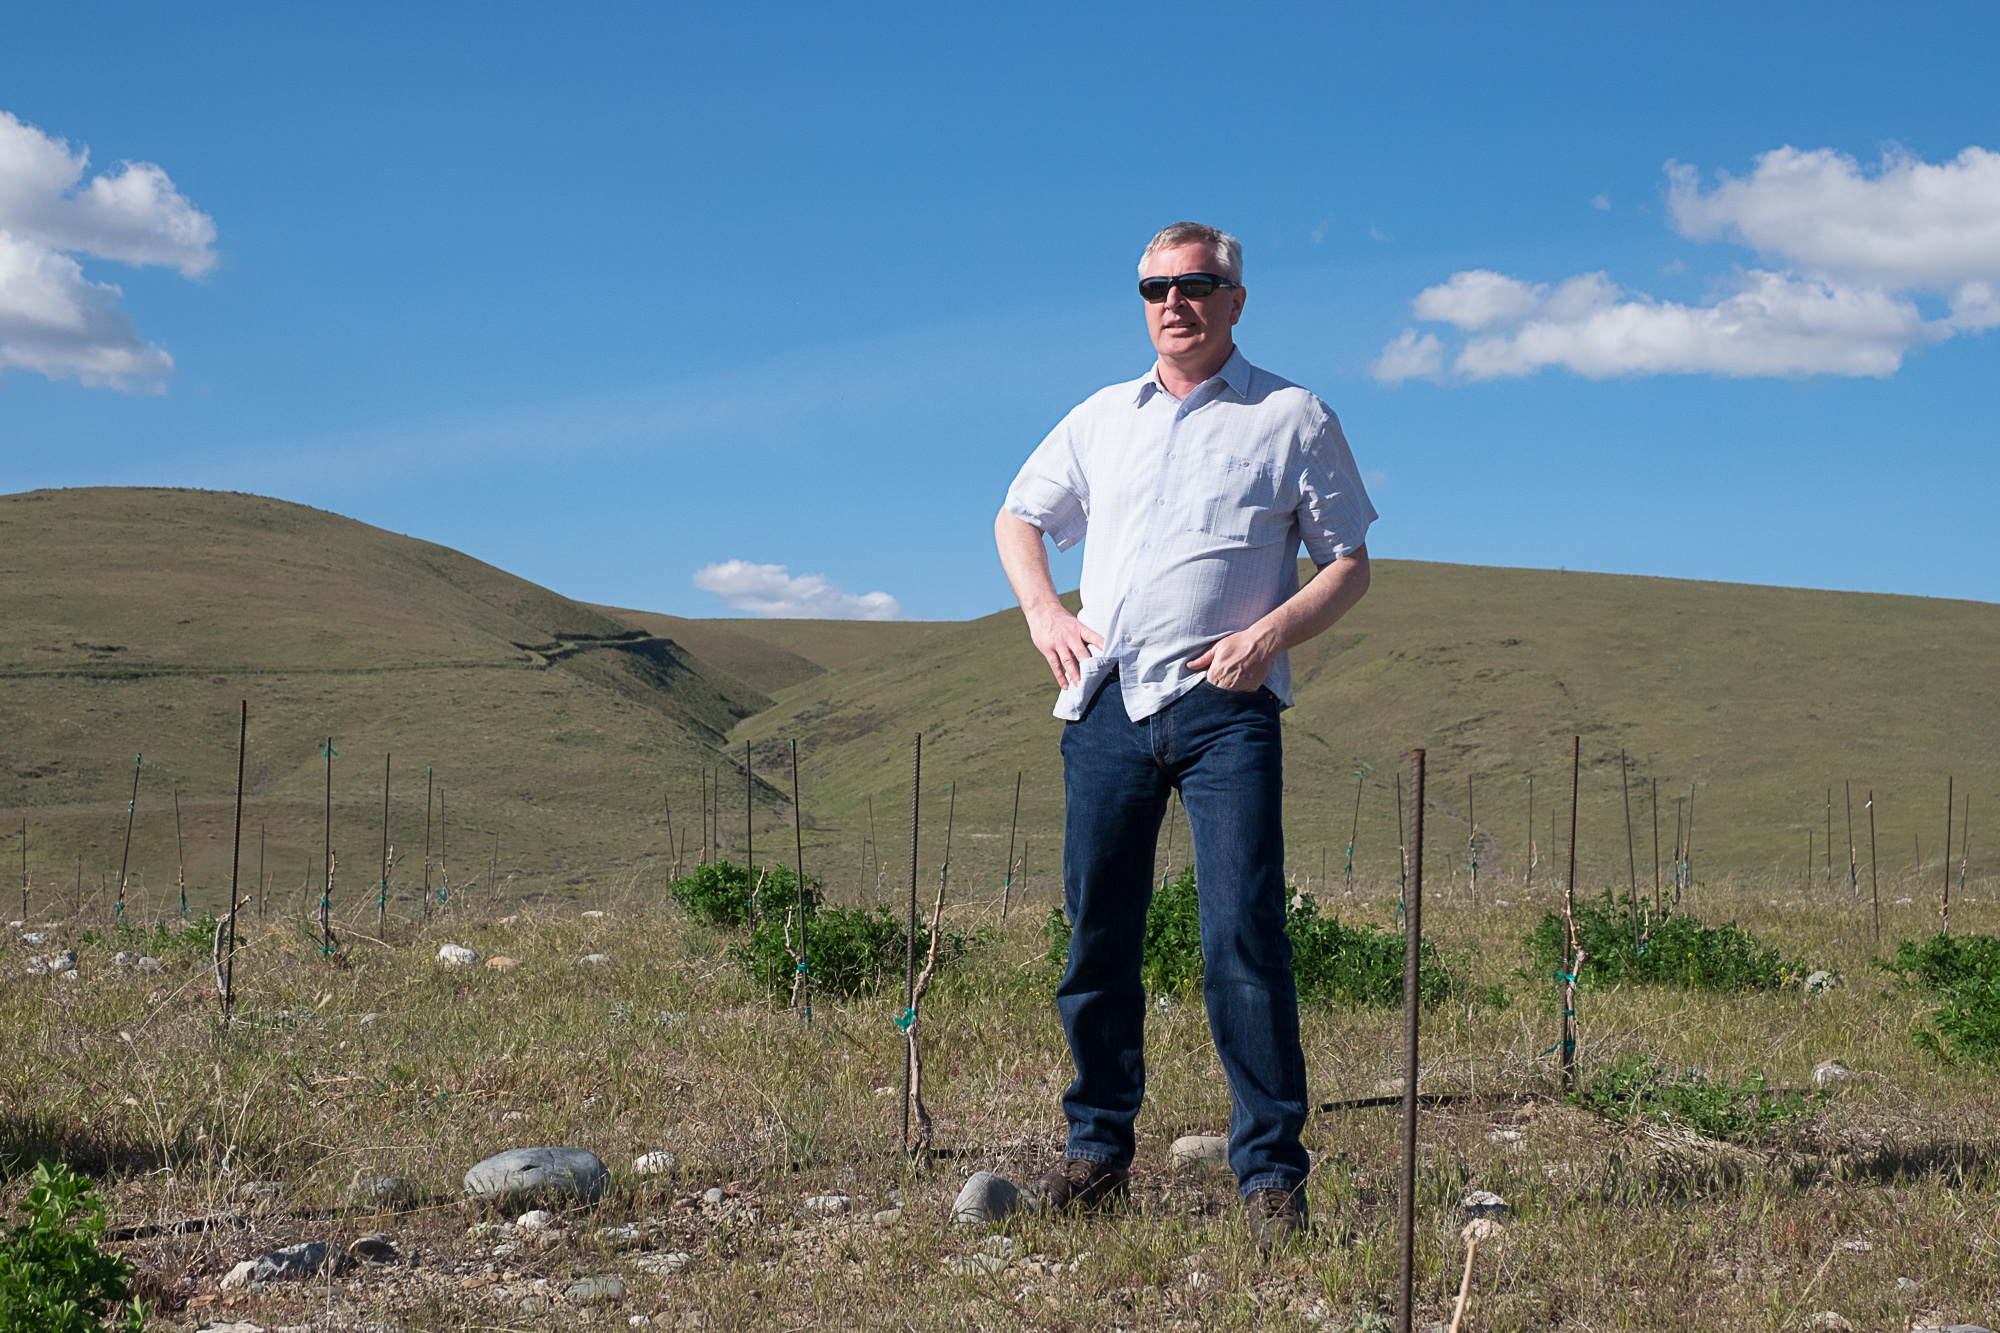 Owner David O'Reilly surveys his domain at  Owen Roe Winery (Image: Paola Thomas/Seattle Refined)